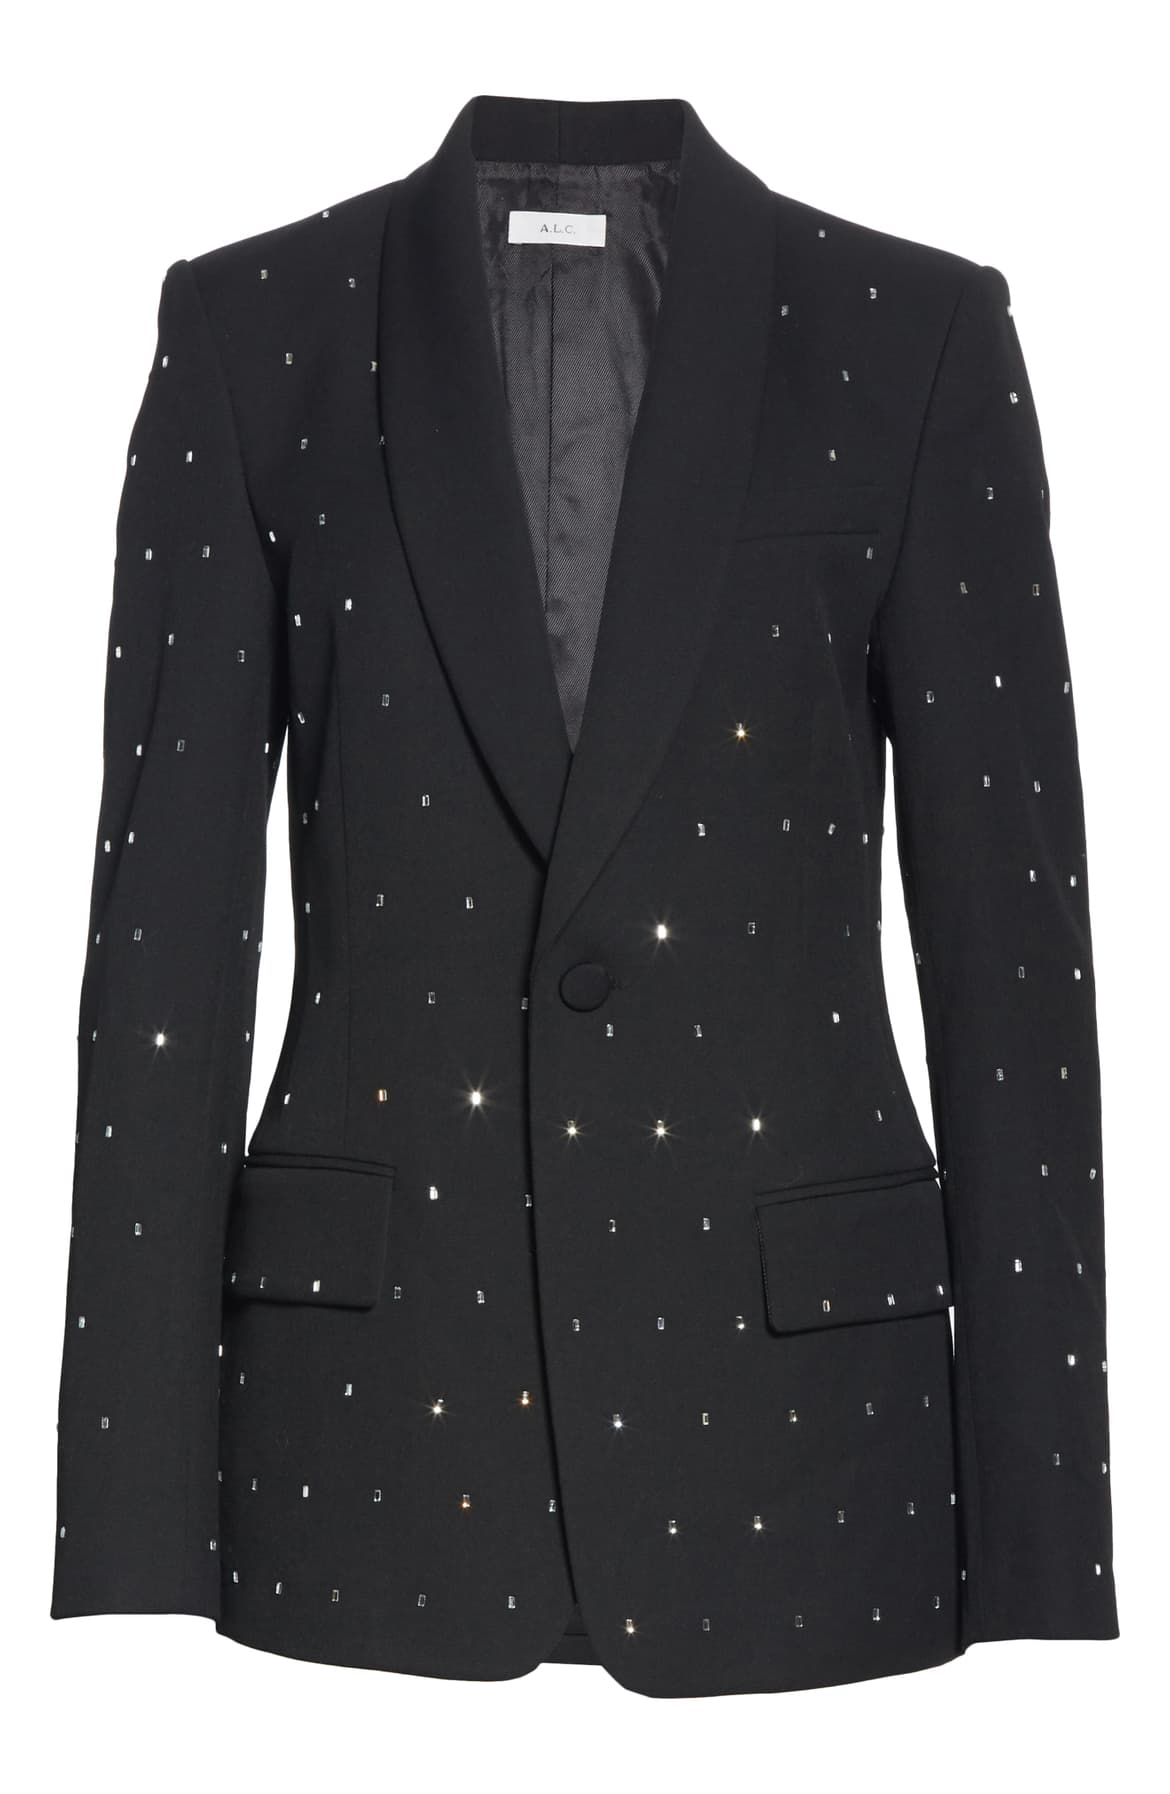 "<a  href=""https://shop.nordstrom.com/s/a-l-c-oren-crystal-embellished-shawl-lapel-blazer/5442370/full?origin=keywordsearch-personalizedsort&breadcrumb=Home%2FAll%20Results&color=black"" target=""_blank"" title=""https://shop.nordstrom.com/s/a-l-c-oren-crystal-embellished-shawl-lapel-blazer/5442370/full?origin=keywordsearch-personalizedsort&breadcrumb=Home%2FAll%20Results&color=black"">A.L.C. Oren Crystal Embellished Shawl Lapel Blazer - $795.</a>{&nbsp;}From cozy to gold hued to tailored, Nordstrom has the hottest trends for getting glam this holiday season! (Credit: Nordstrom)"